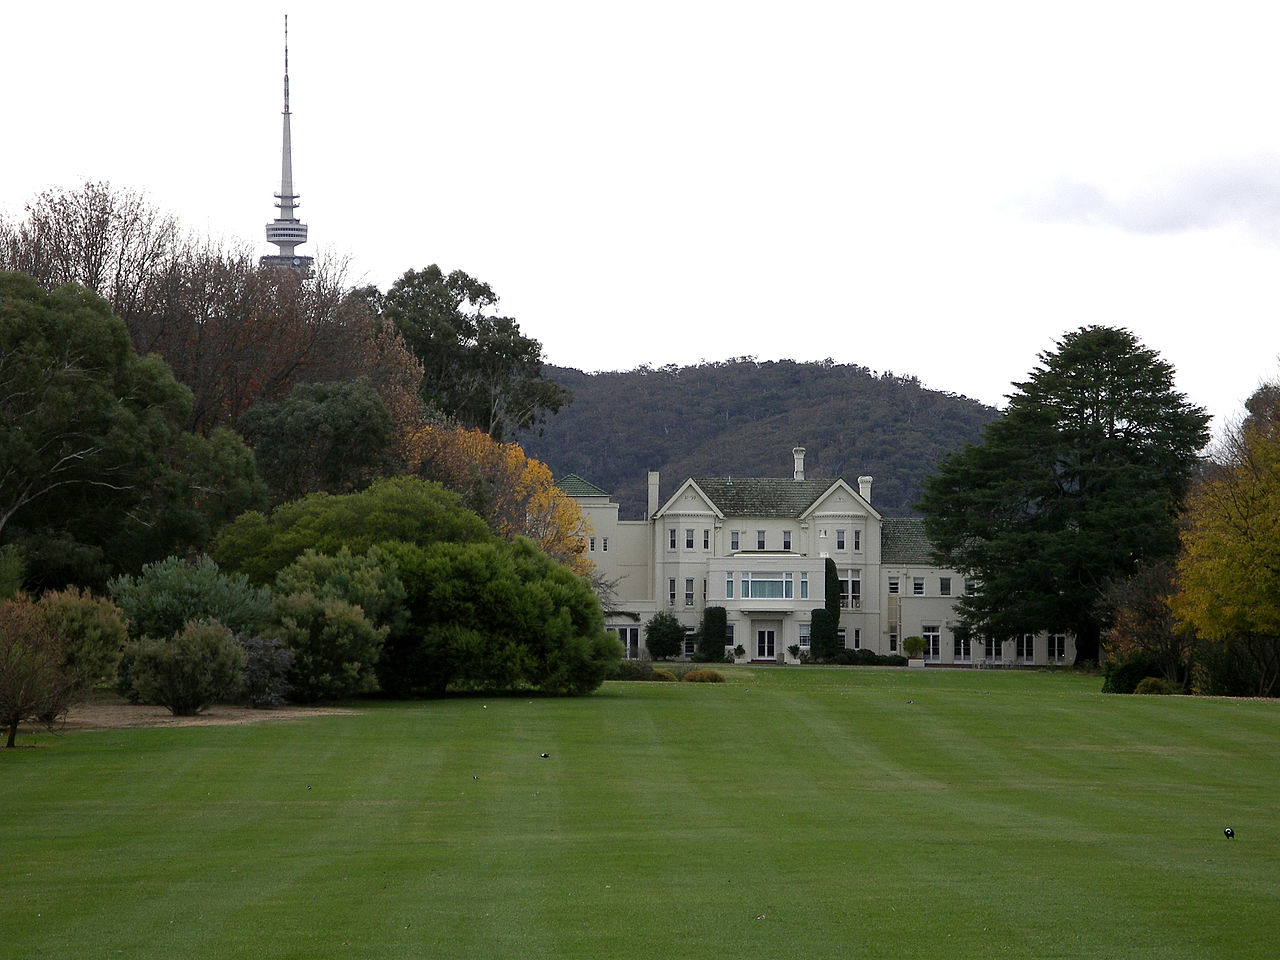 1280px-Government_House_Canberra.JPG